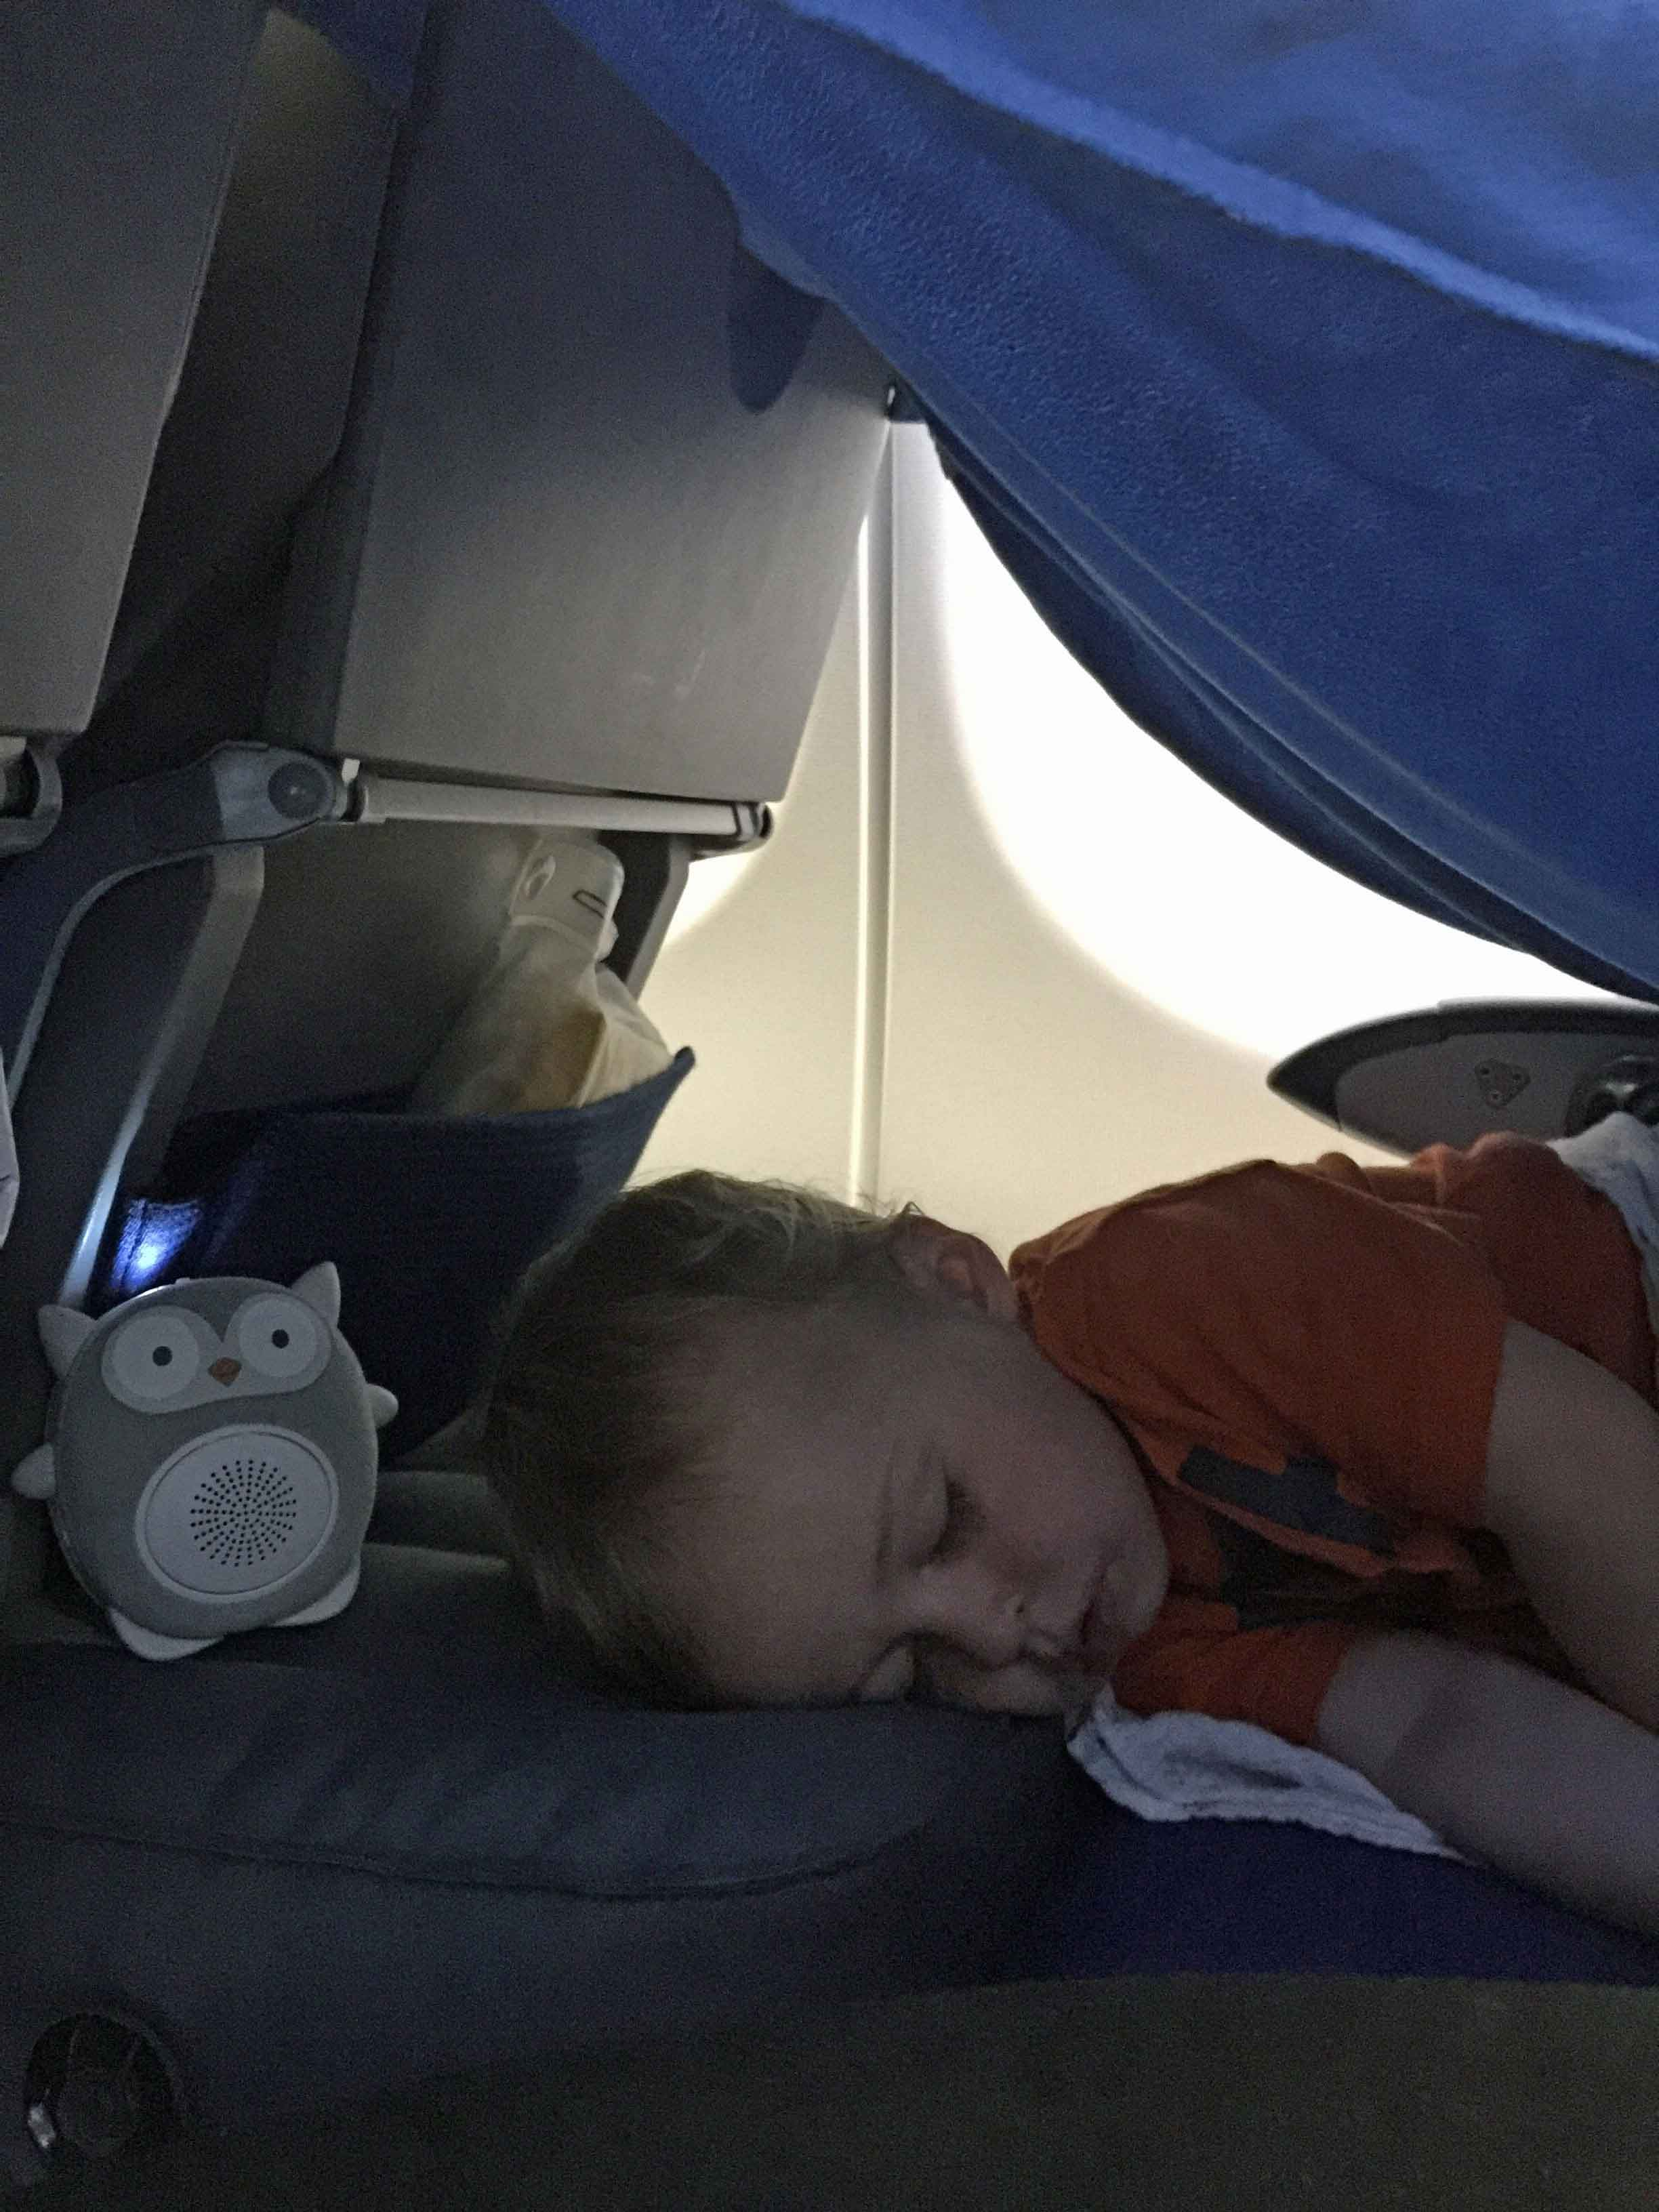 Baby-Can-Travel---Fly-Tot-Review---Inflatable-Travel-Bed-Baby-Sleeping-Flight-From-Norway-1